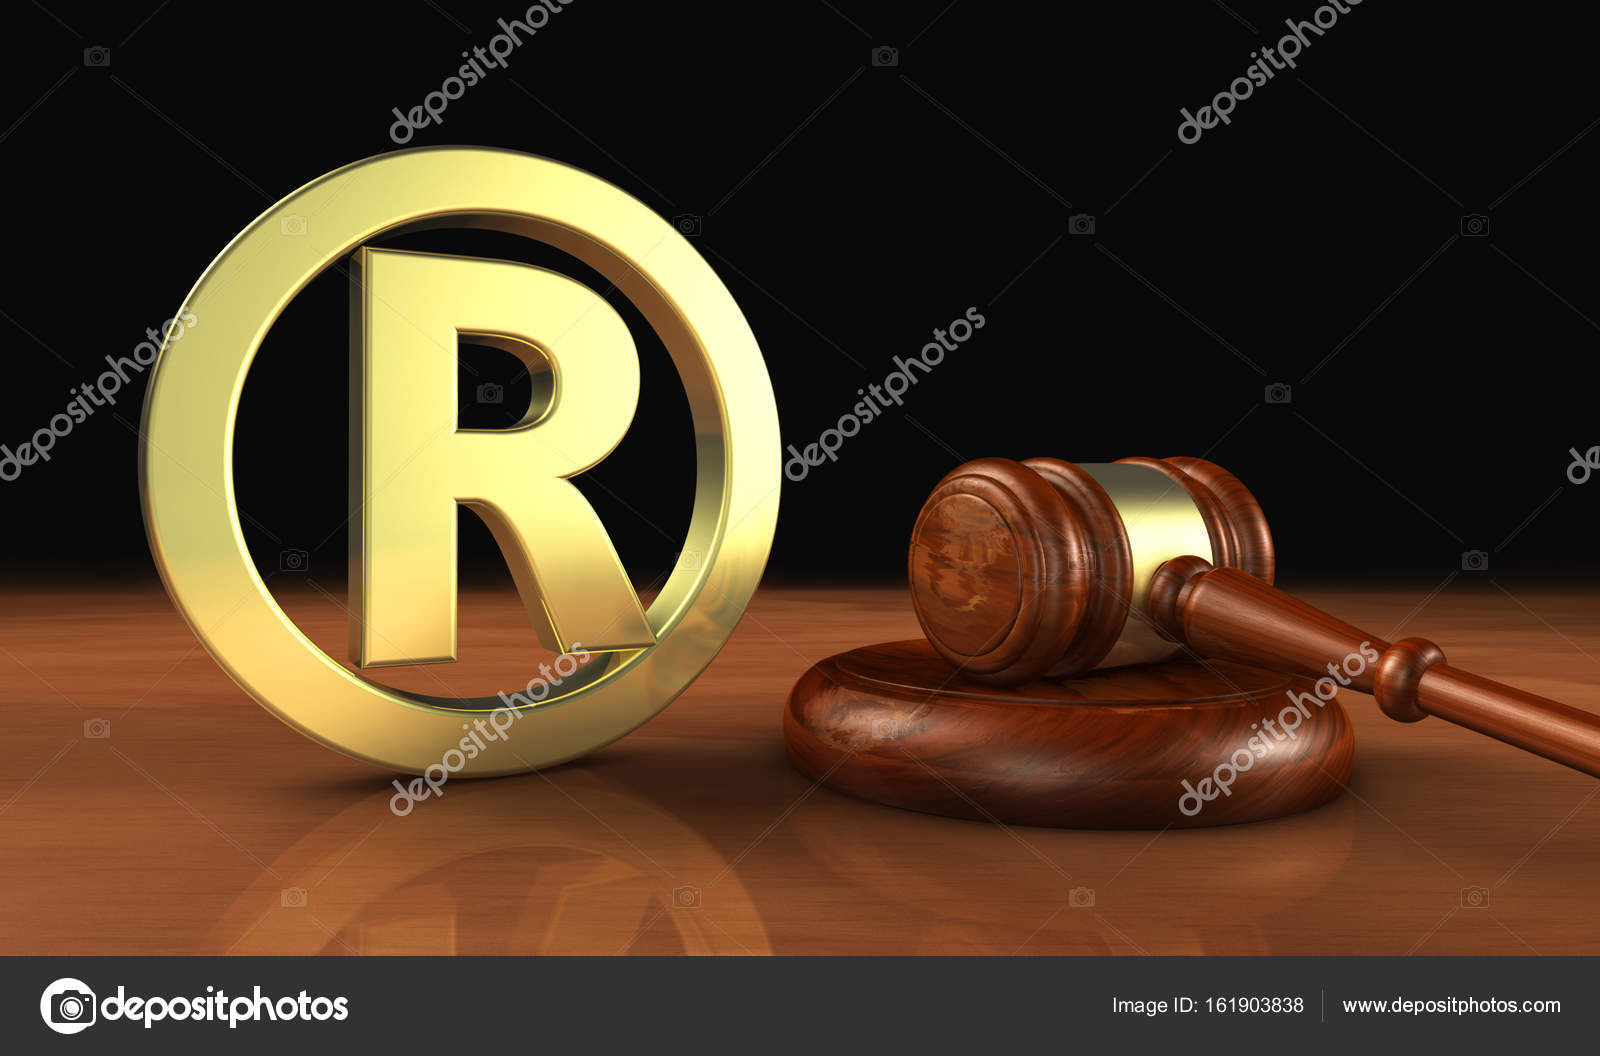 Registered trademark business law stock photo nirodesign registered trademark law business concept with golden trade mark symbol and gavel 3d illustration photo by nirodesign biocorpaavc